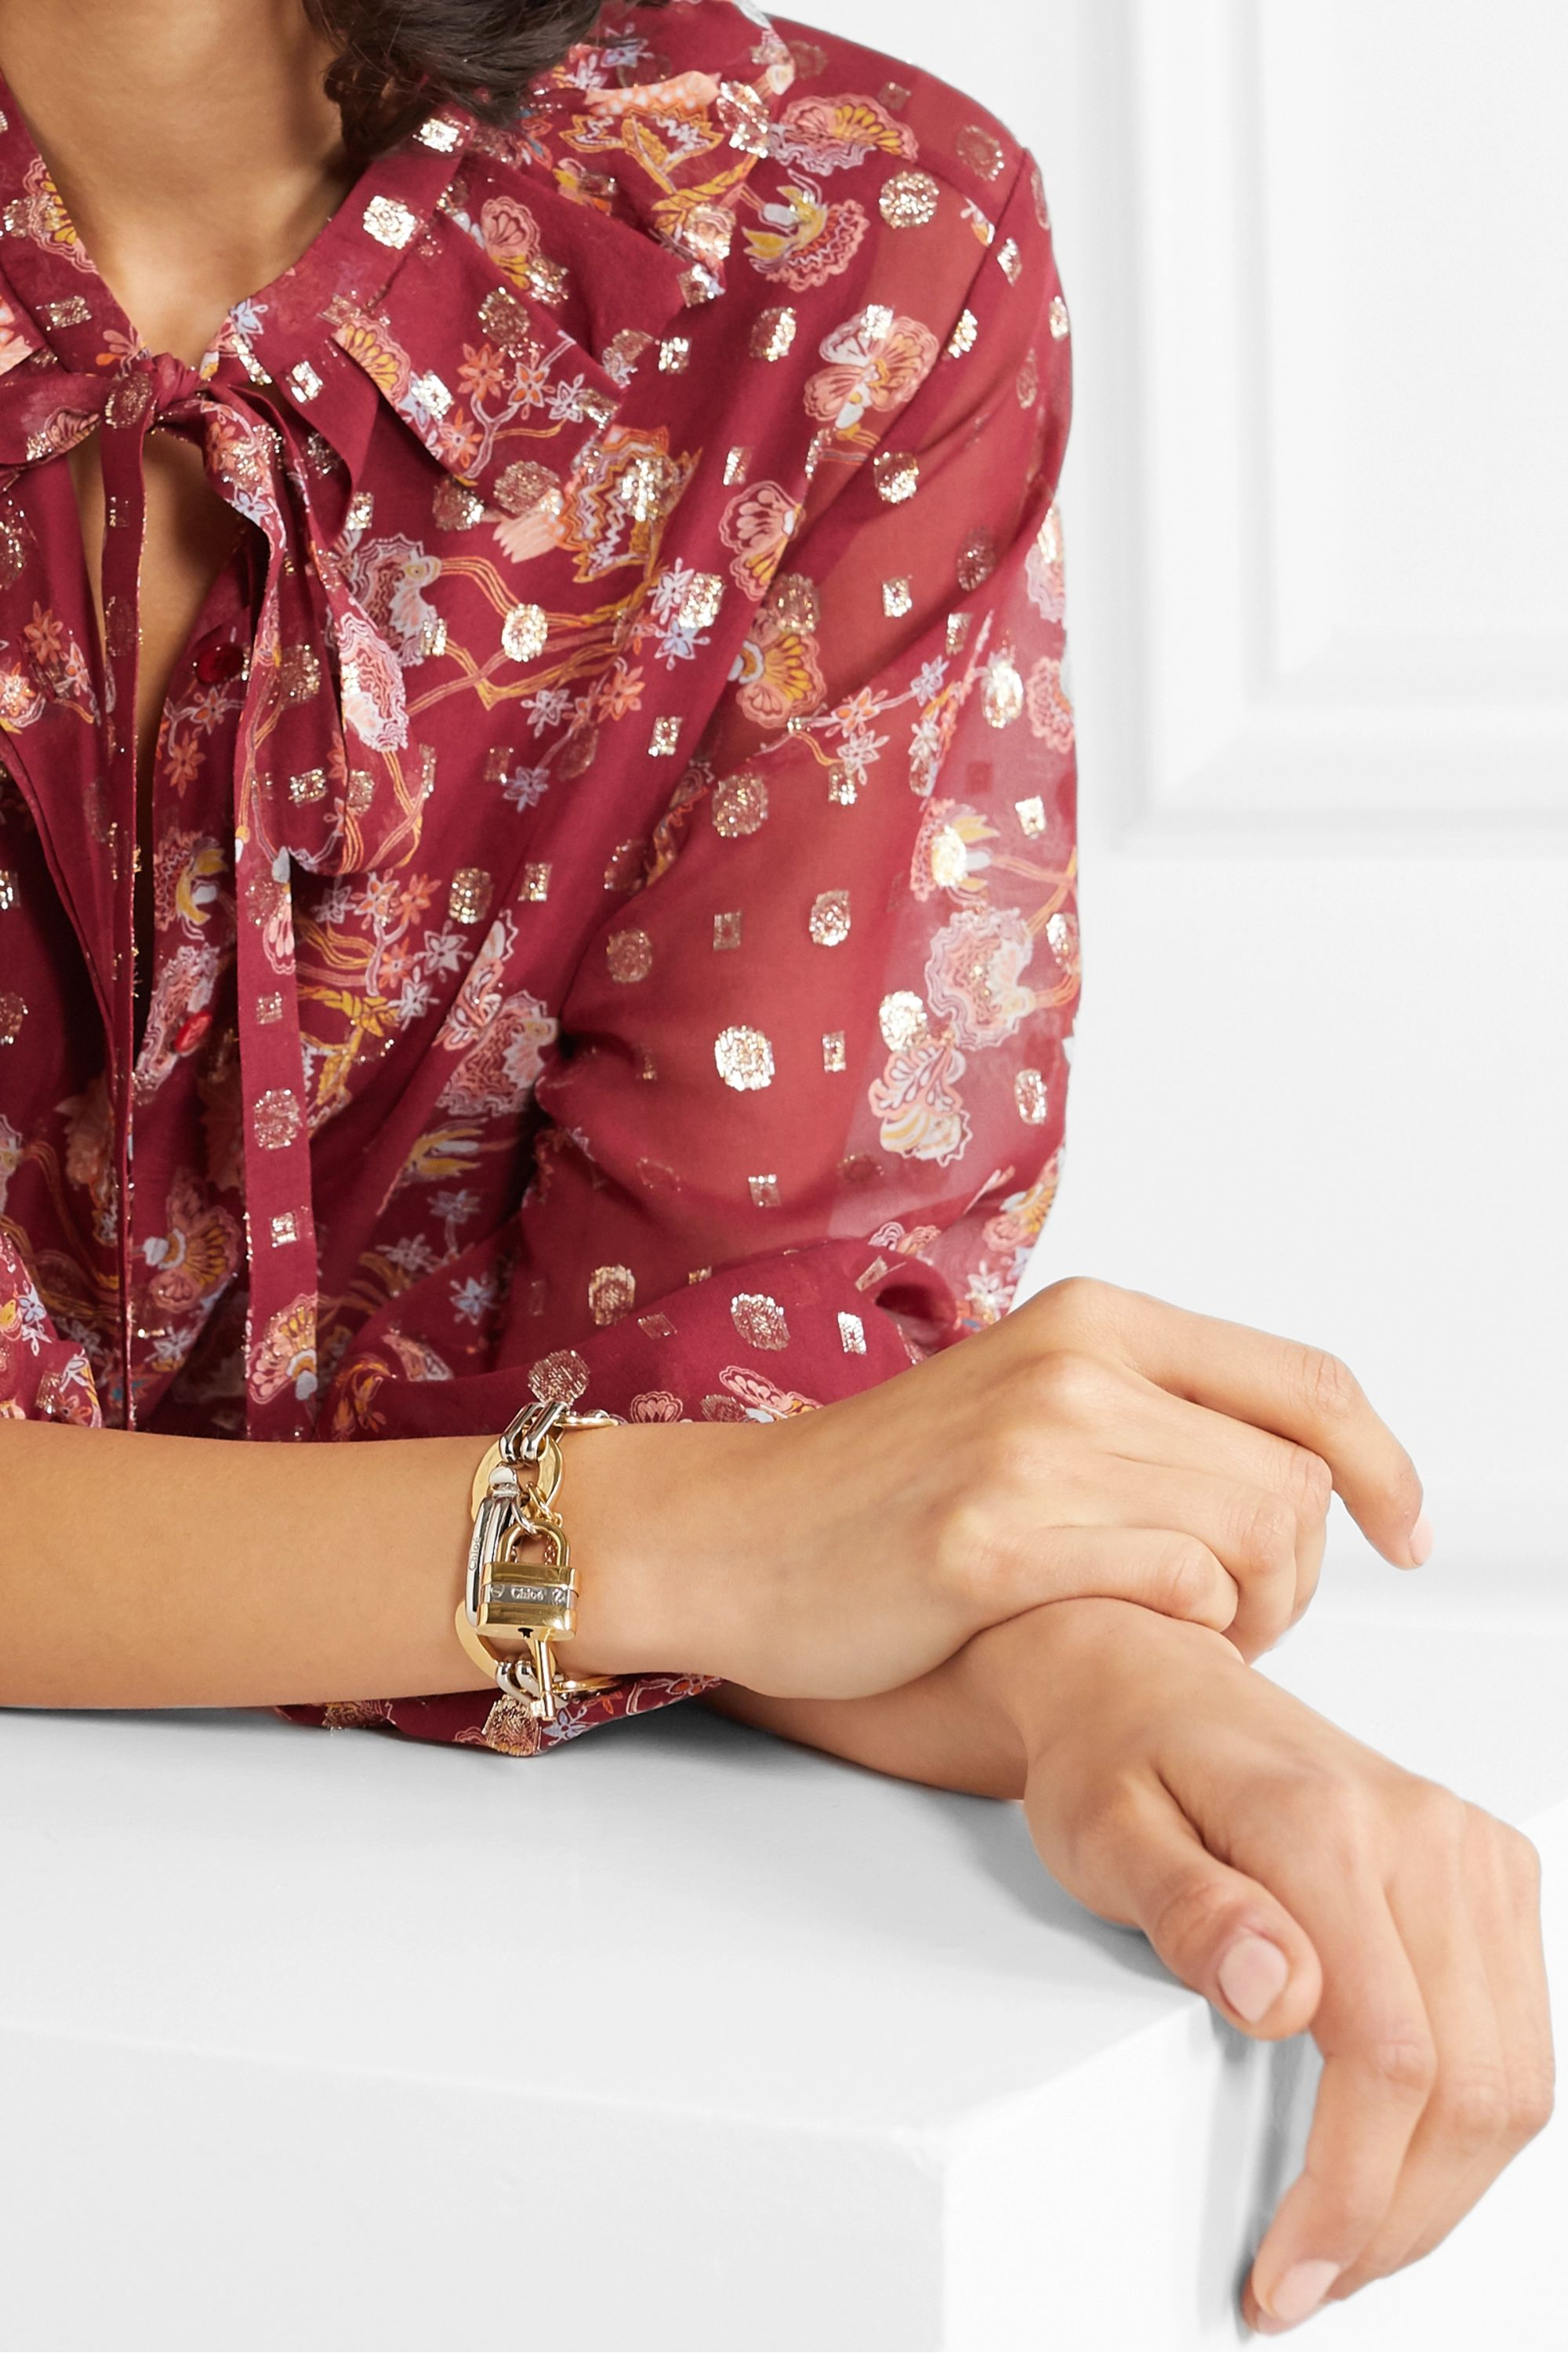 Chloé Colleen gold and silver-tone bracelet